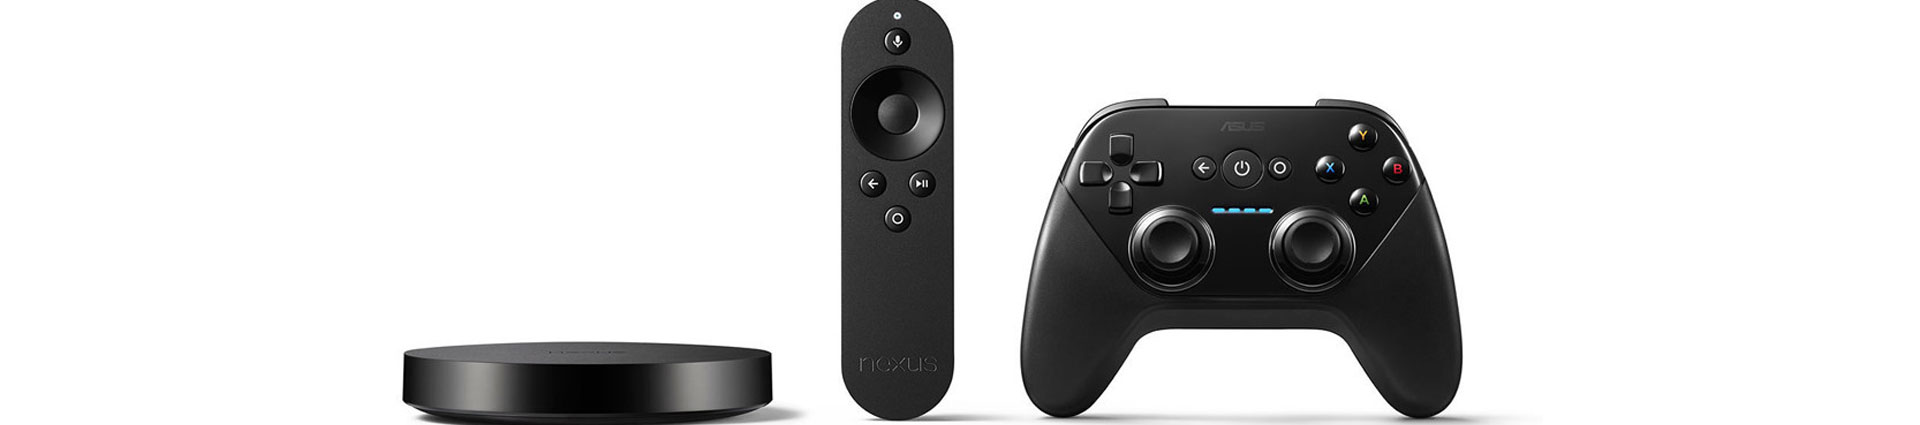 The future of cloud gaming and console gaming